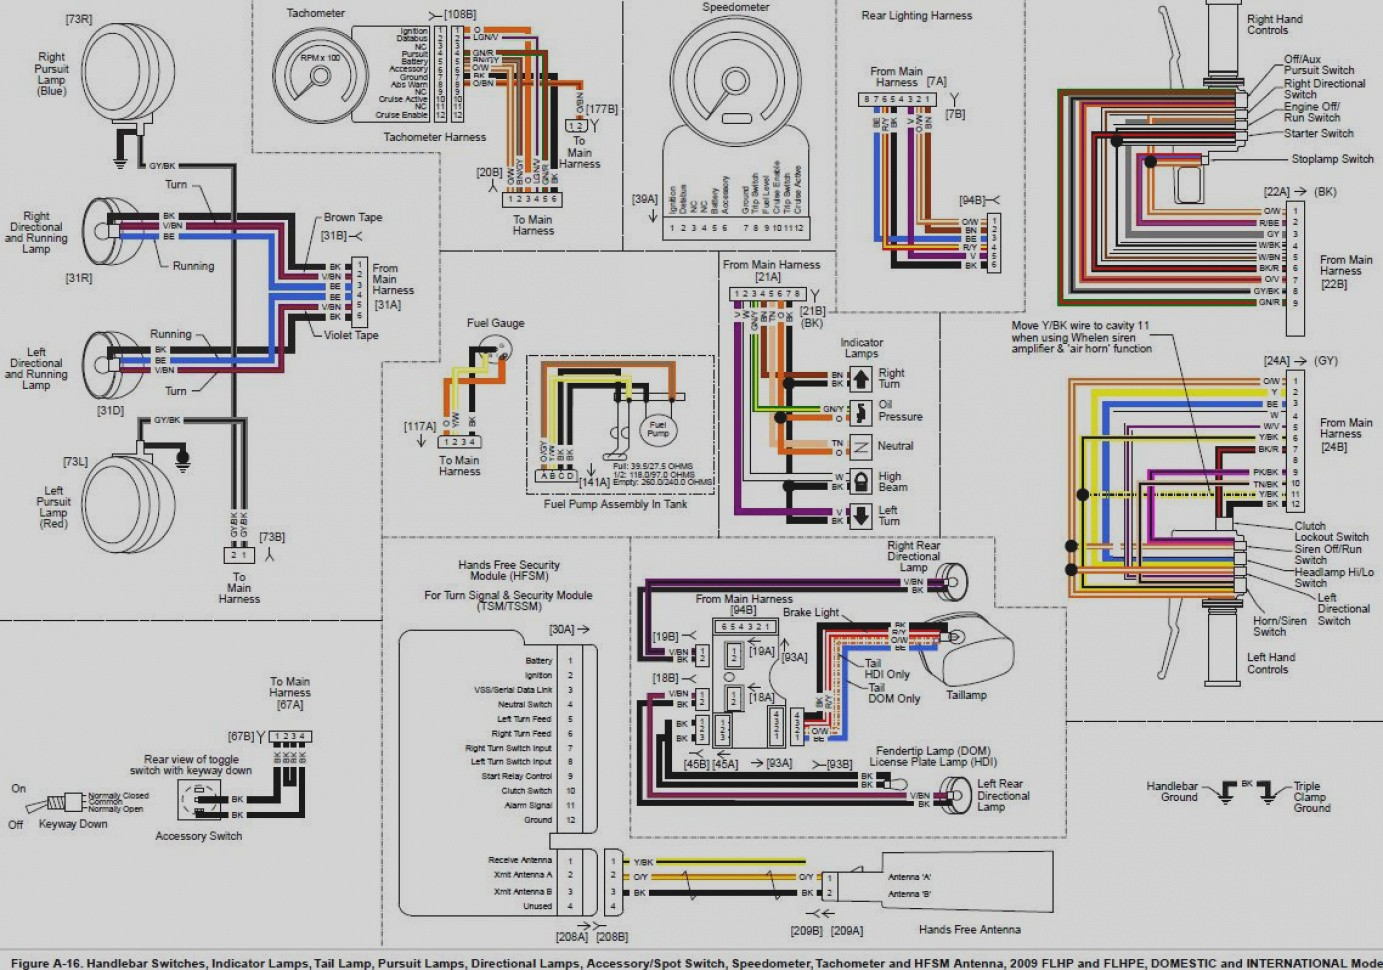 2006 Sportster Wiring Diagram - Wiring Diagram Name on ninja 250 wiring diagram, harley speedometer wiring, victory hammer wiring diagram, harley flh wiring diagram, 2001 sportster ignition system diagram, 2000 harley wiring diagram, harley touring wiring diagram, harley softail wiring diagram, harley rocker wiring diagram, electra glide wiring diagram, simple harley wiring diagram, harley sportster power diagram, harley wiring diagram for dummies, 2000 dodge dakota tail light wiring diagram, harley generator wiring diagram, harley evo diagram, harley dyna wiring diagram, harley wide glide wiring diagram, harley sportster lubrication diagram, harley fl wiring diagram,